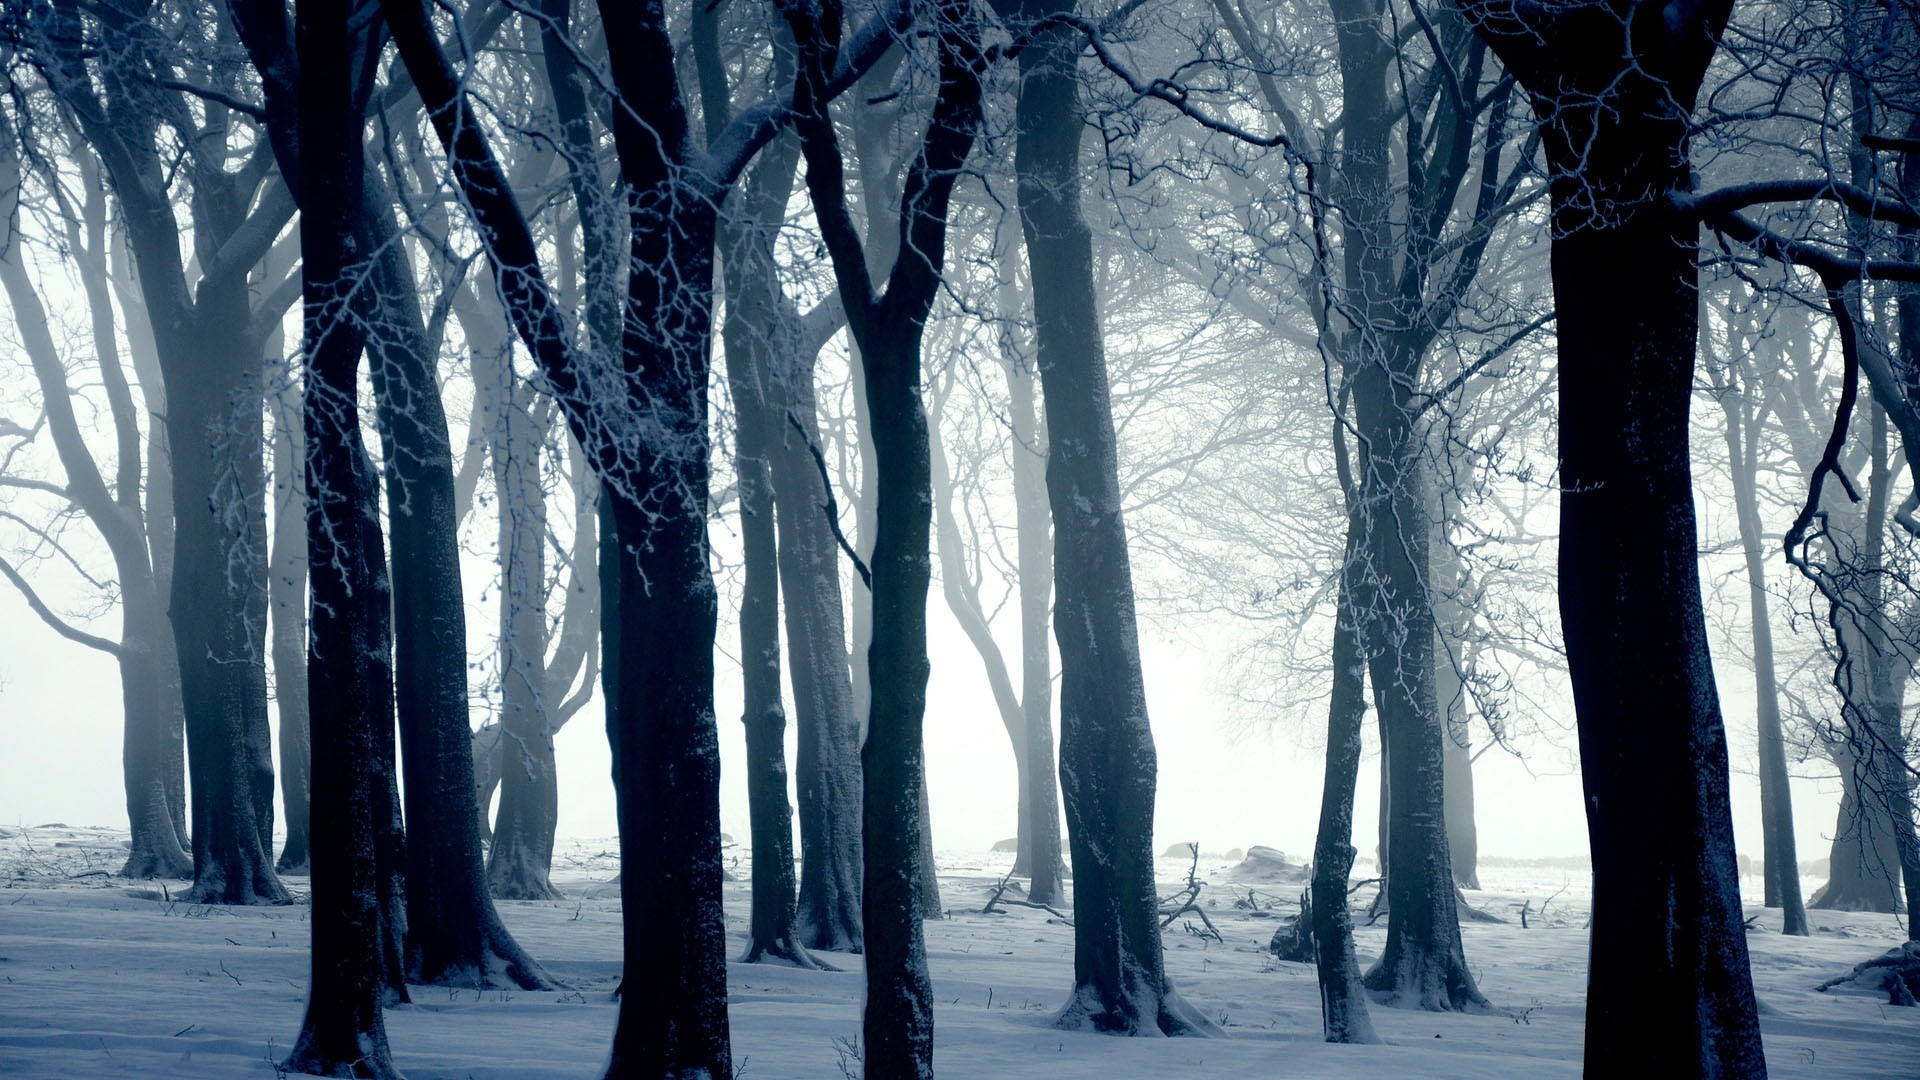 1920x1080, Silhouettes Of Trees In Winter Forest   - Forest Trees Winter - HD Wallpaper